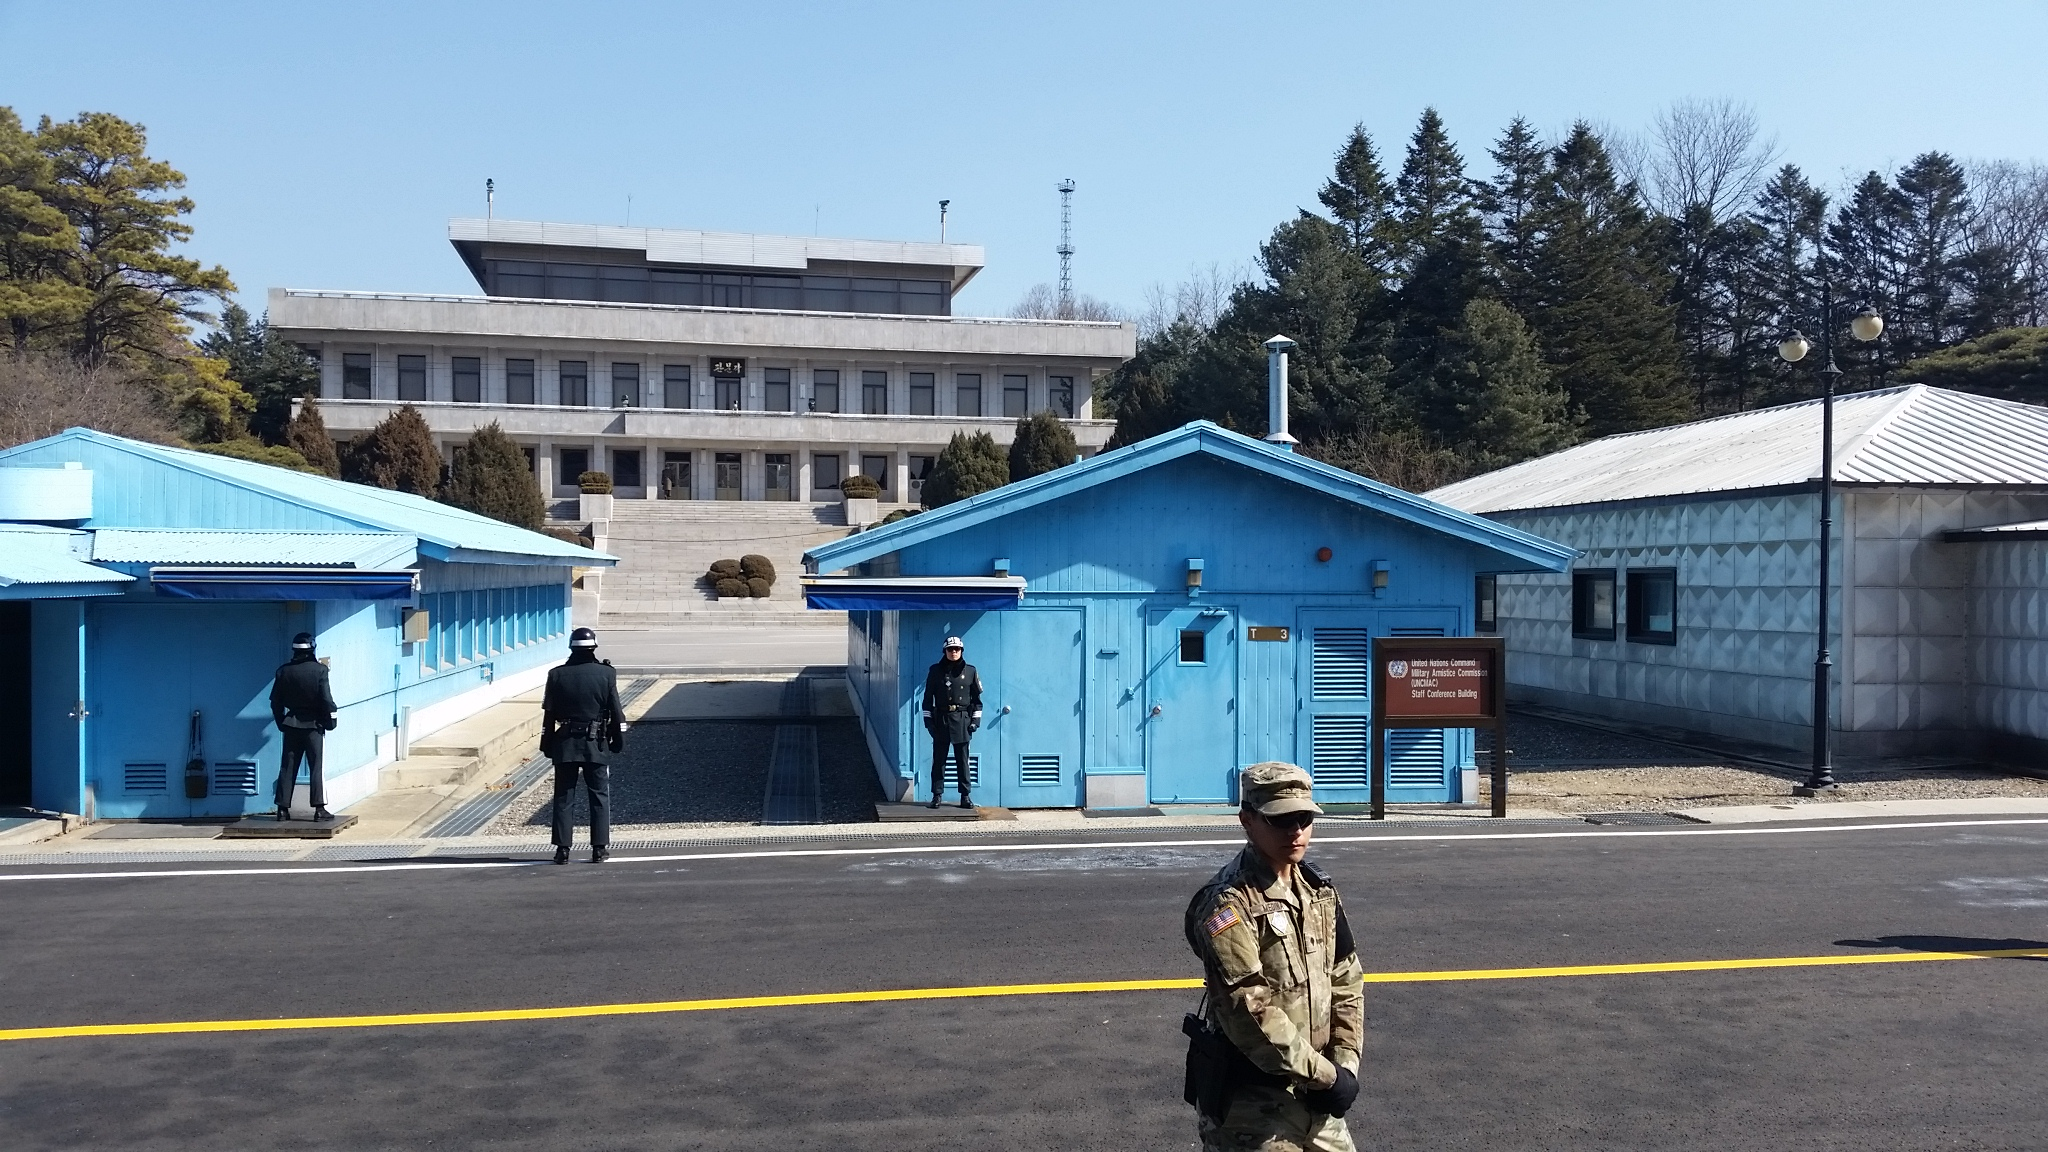 North Korea's Panmungak building, visible in the background behind Buildings T-2 and T-3.